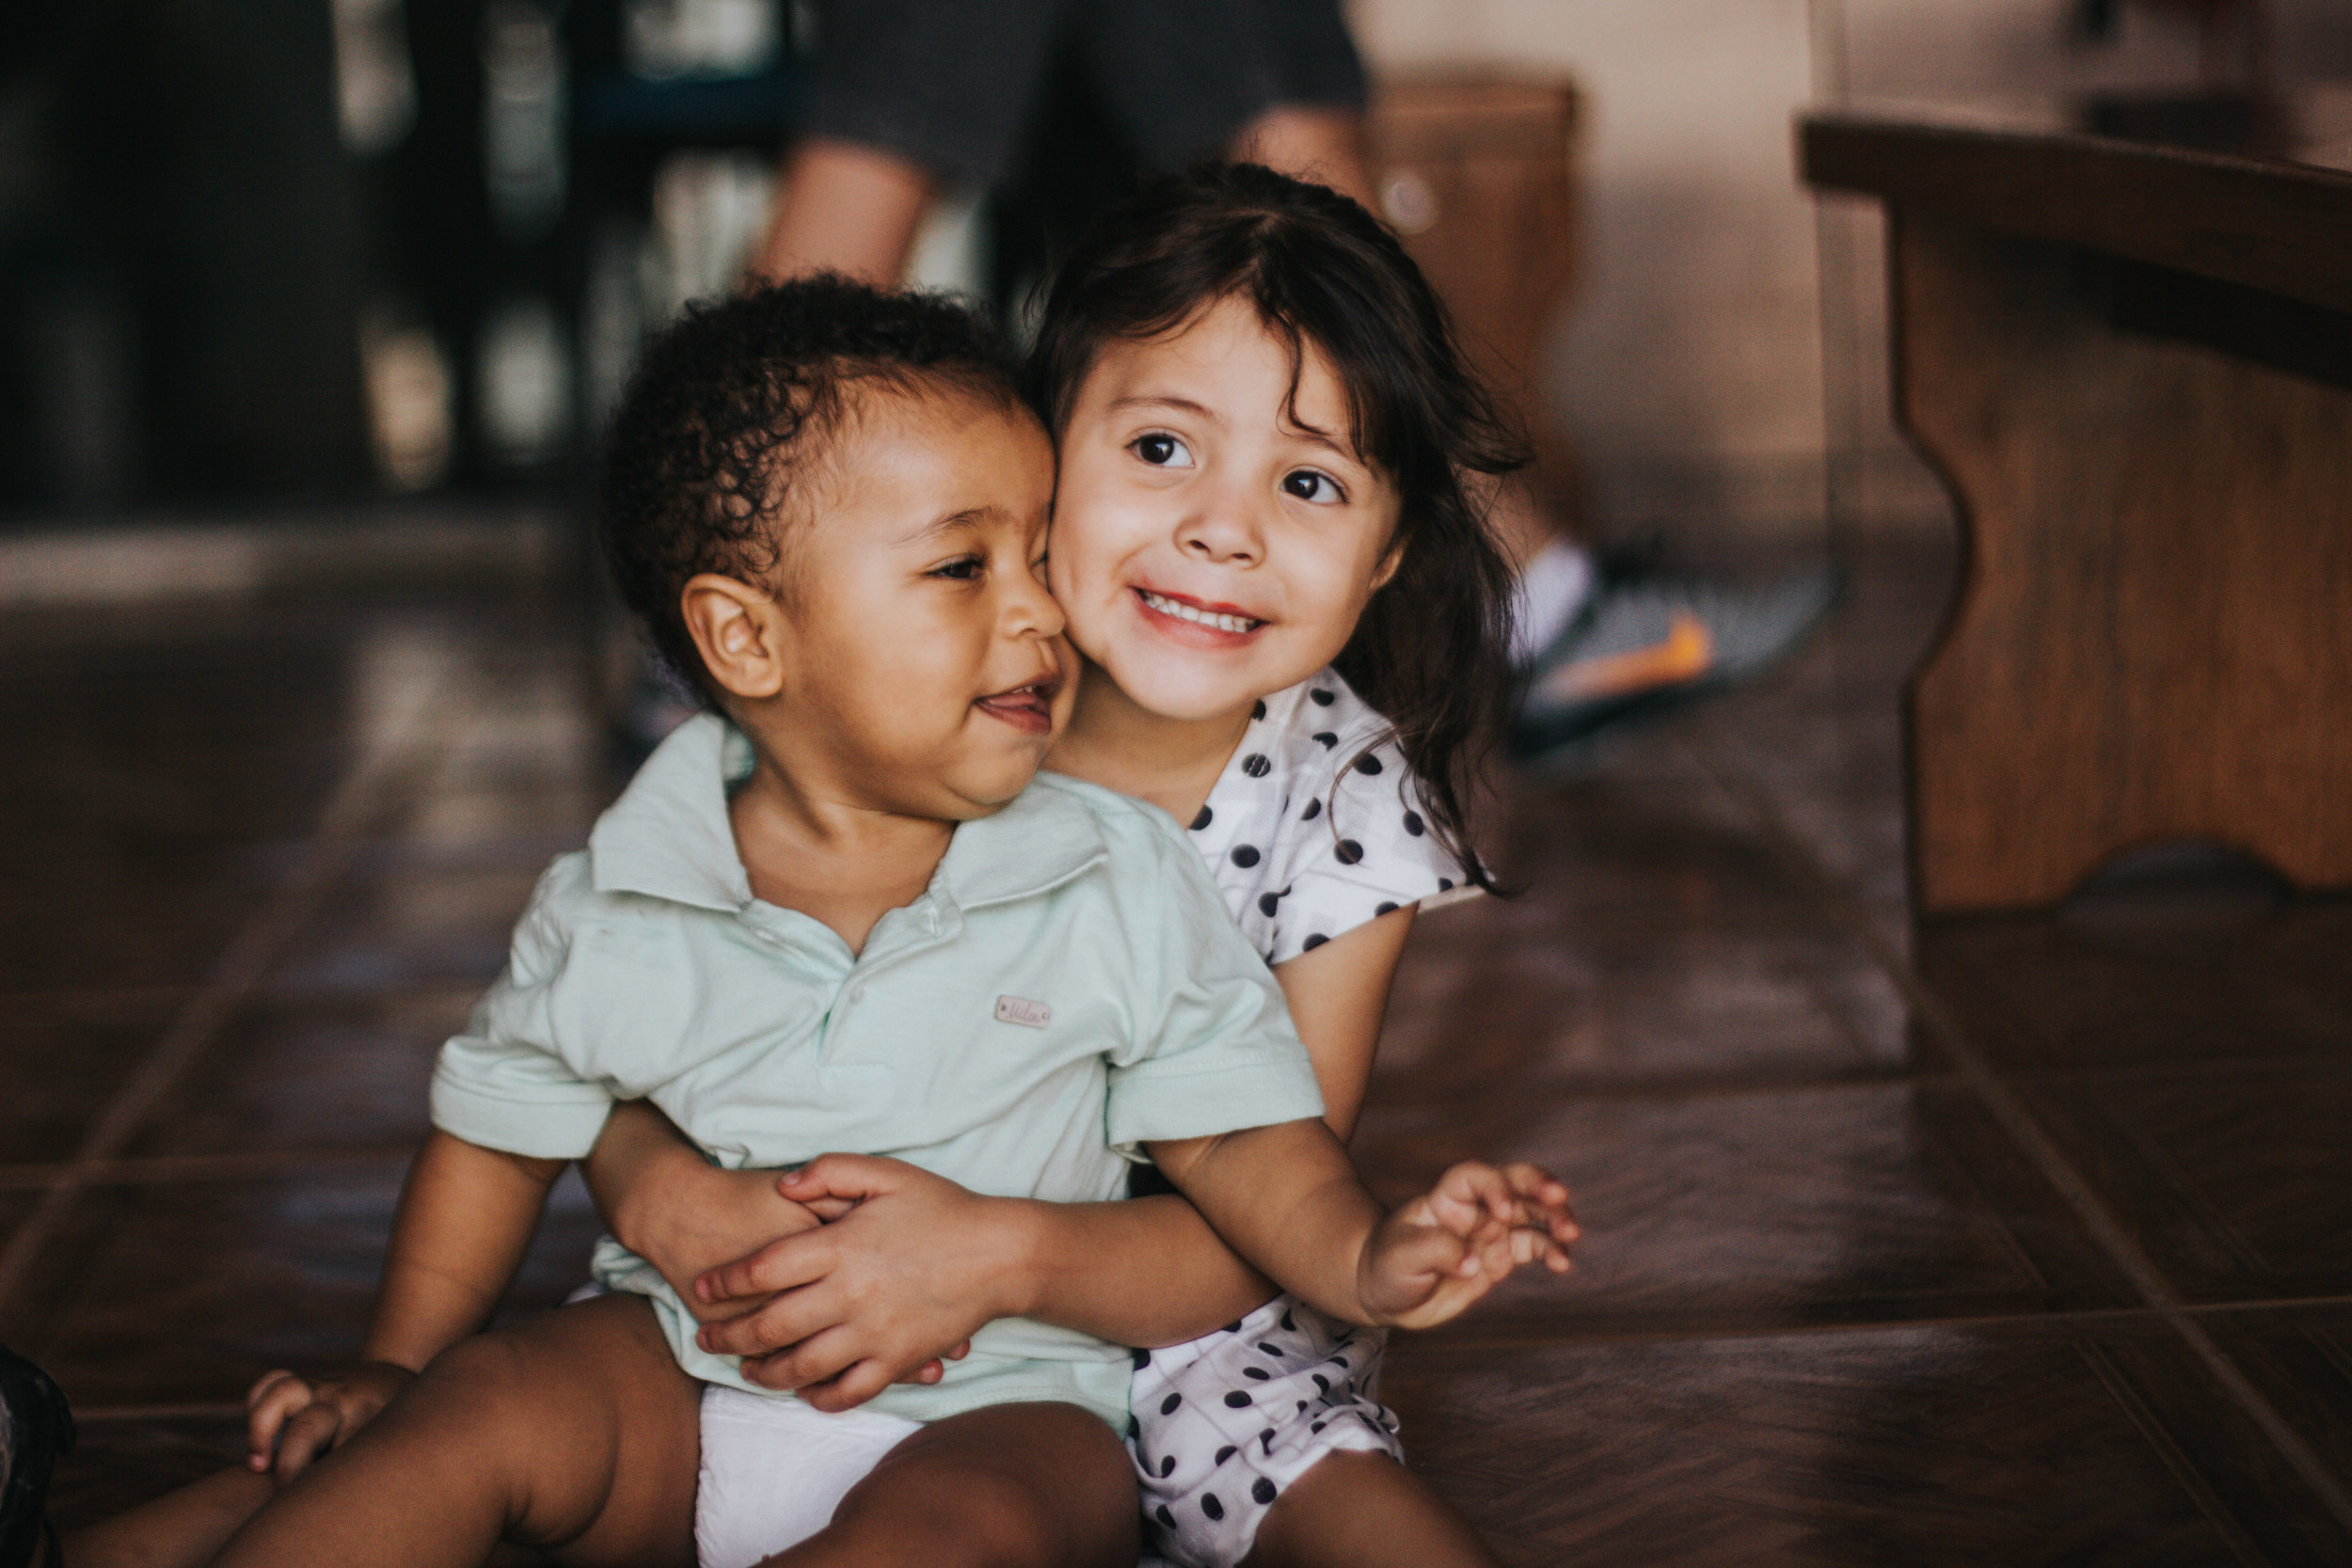 Children's Ministry - Grace offers Children's Ministry for ages 0 through 9 each Sunday morning. Classes involve activities, games and a lesson from the bible.